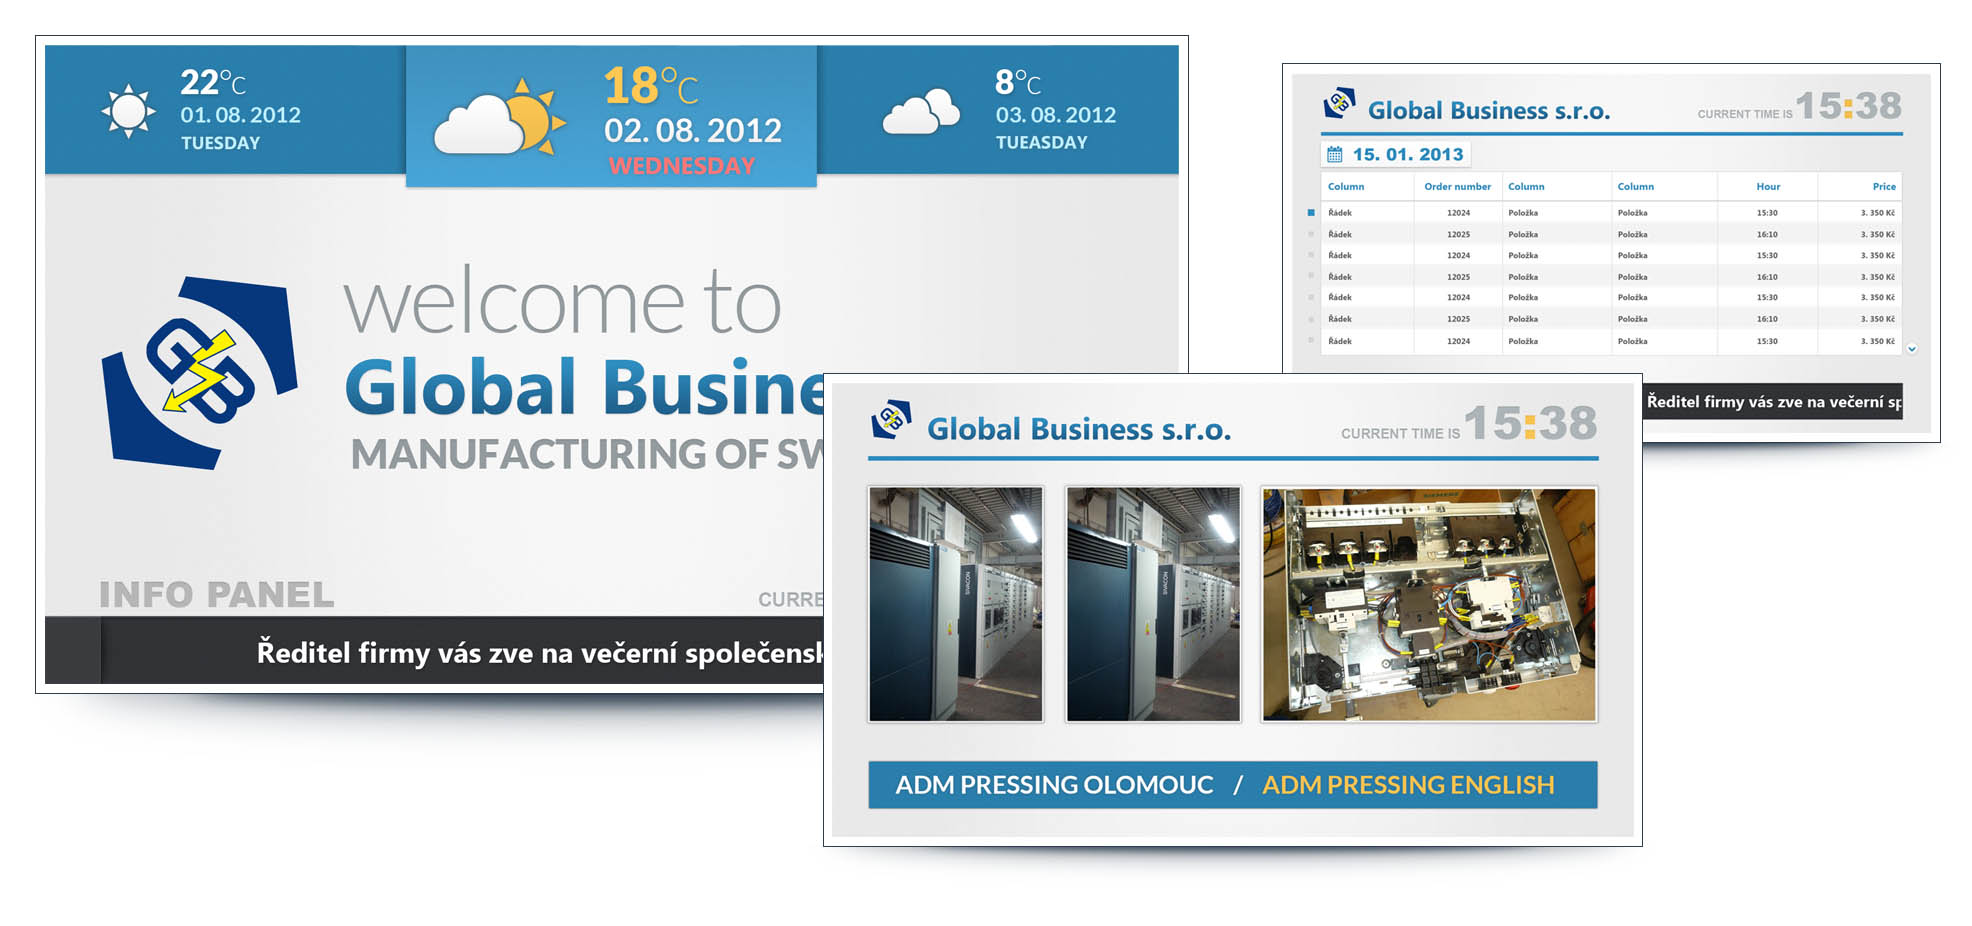 Global Business, s.r.o.